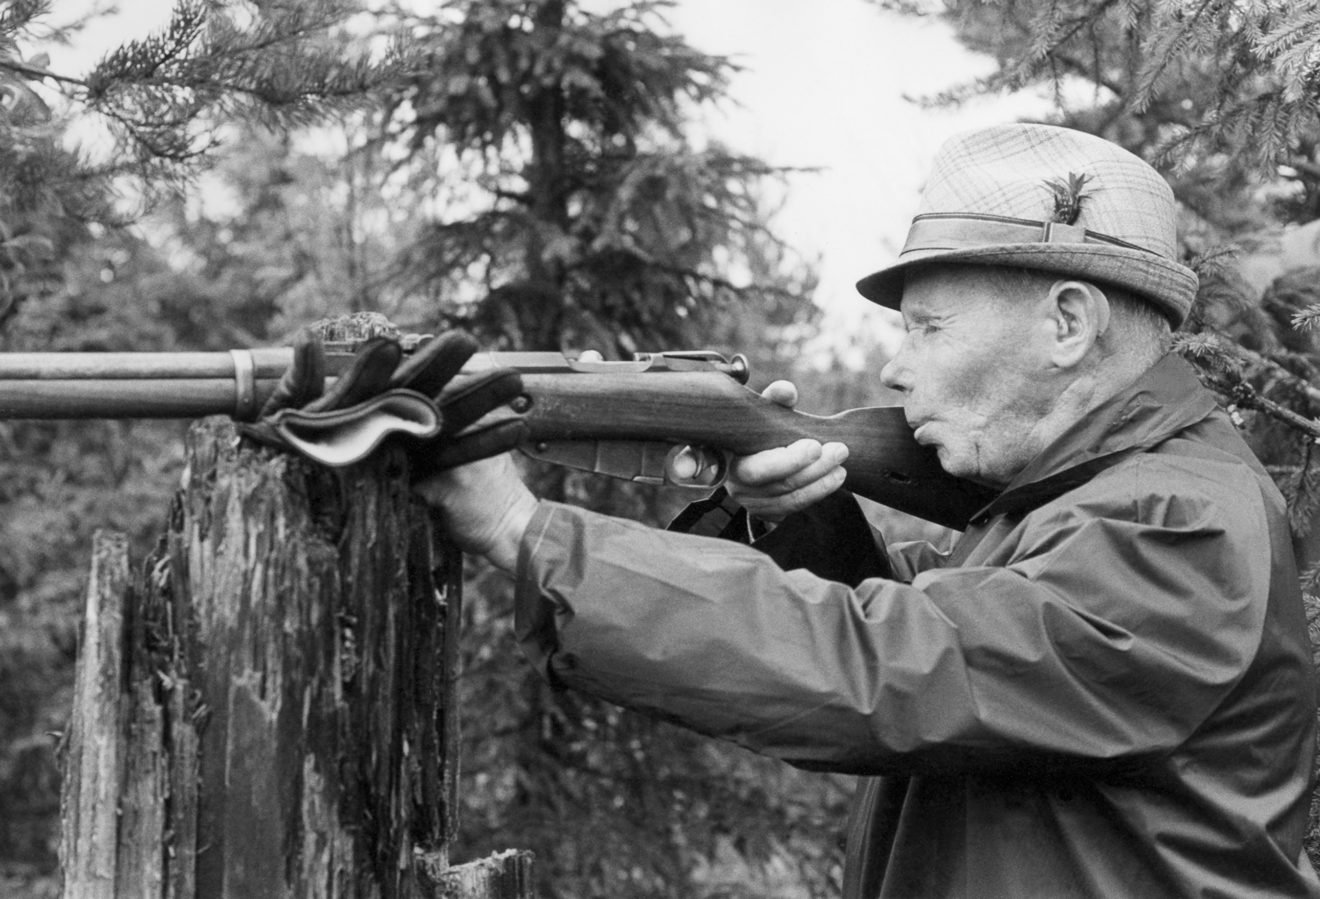 Häyhä shooting at the Simo Häyhä Sniper Competition in Sotinpuro, Finland, 1978.